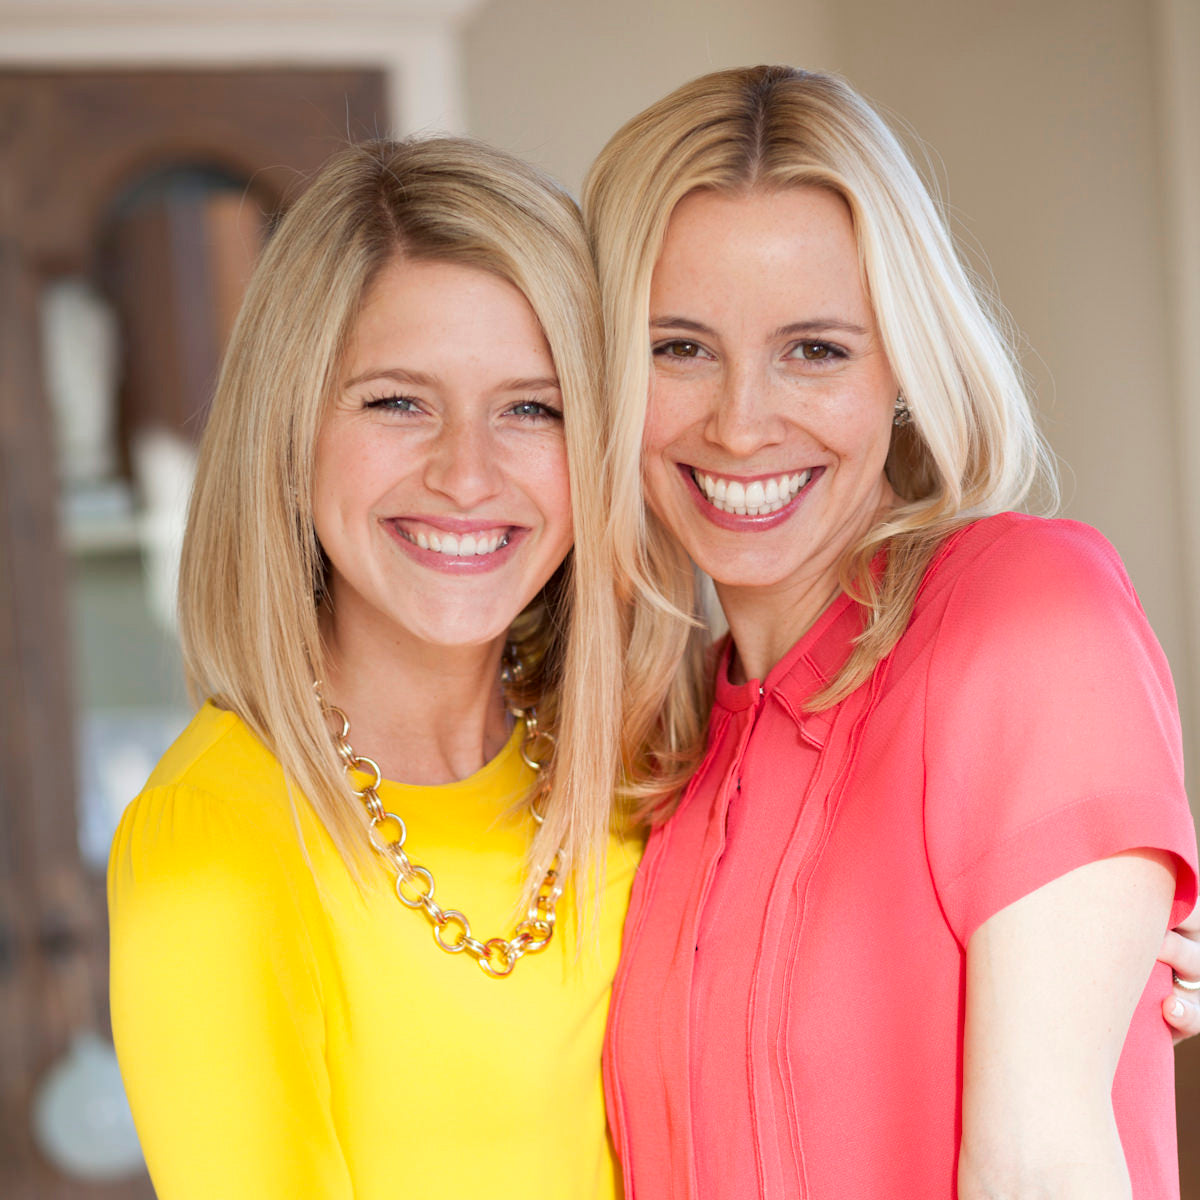 Molly Graves, Ashley Murphy, NEAT Method, Co-Founders, Business Partners, Entrepreneurs, Home Organizing, Professional Organizers